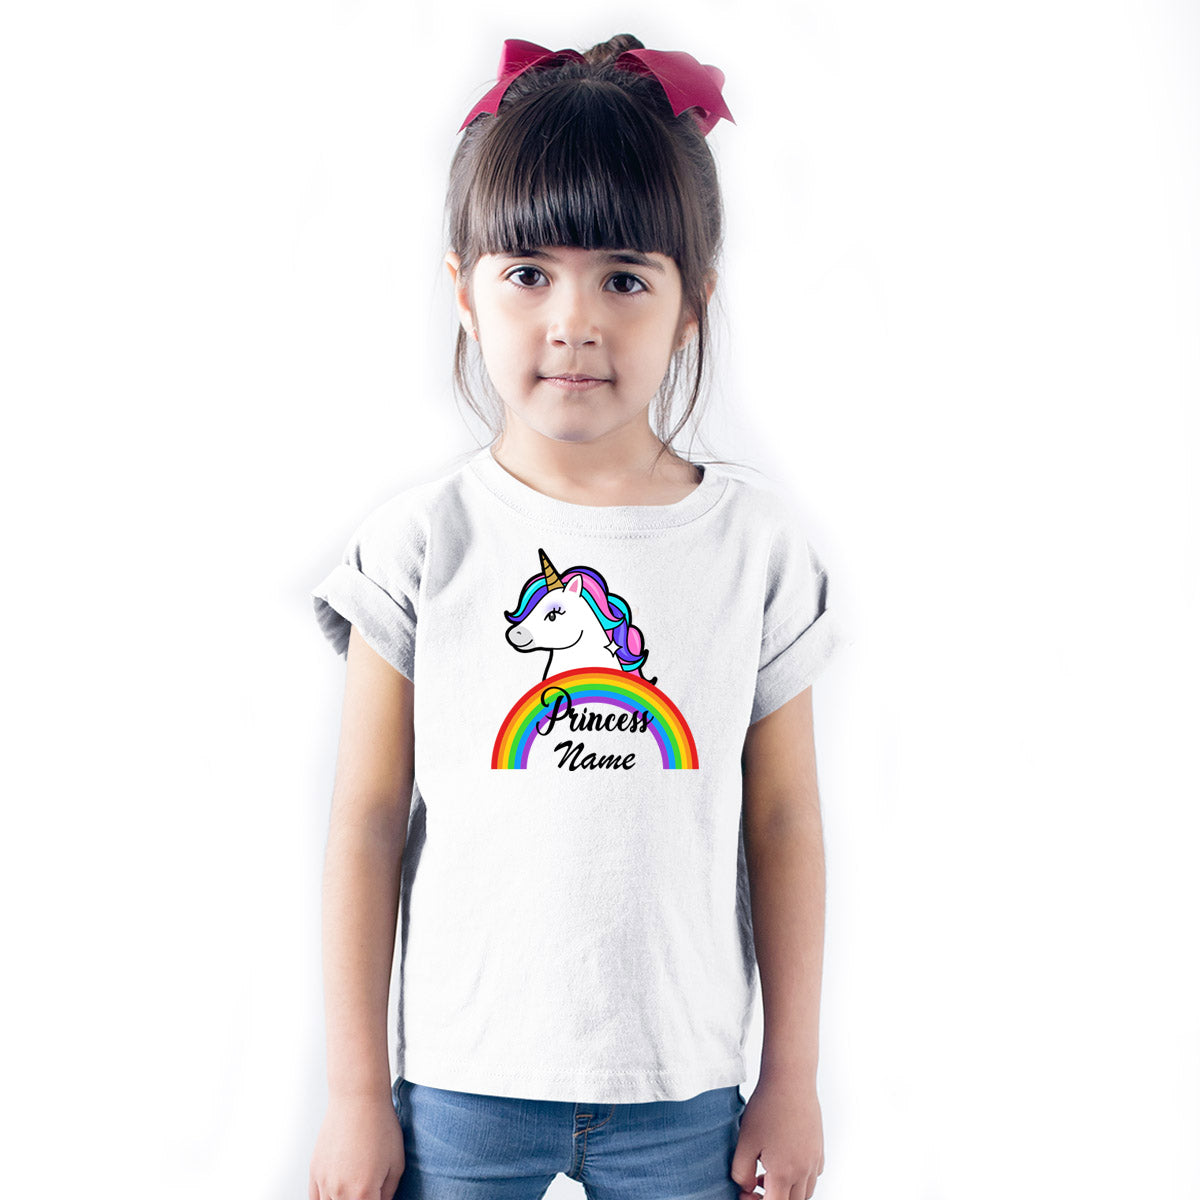 Sprinklecart Cute Rainbow Unicorn's Personalized Name Printed Kids Poly-Cotton T Shirt (White)